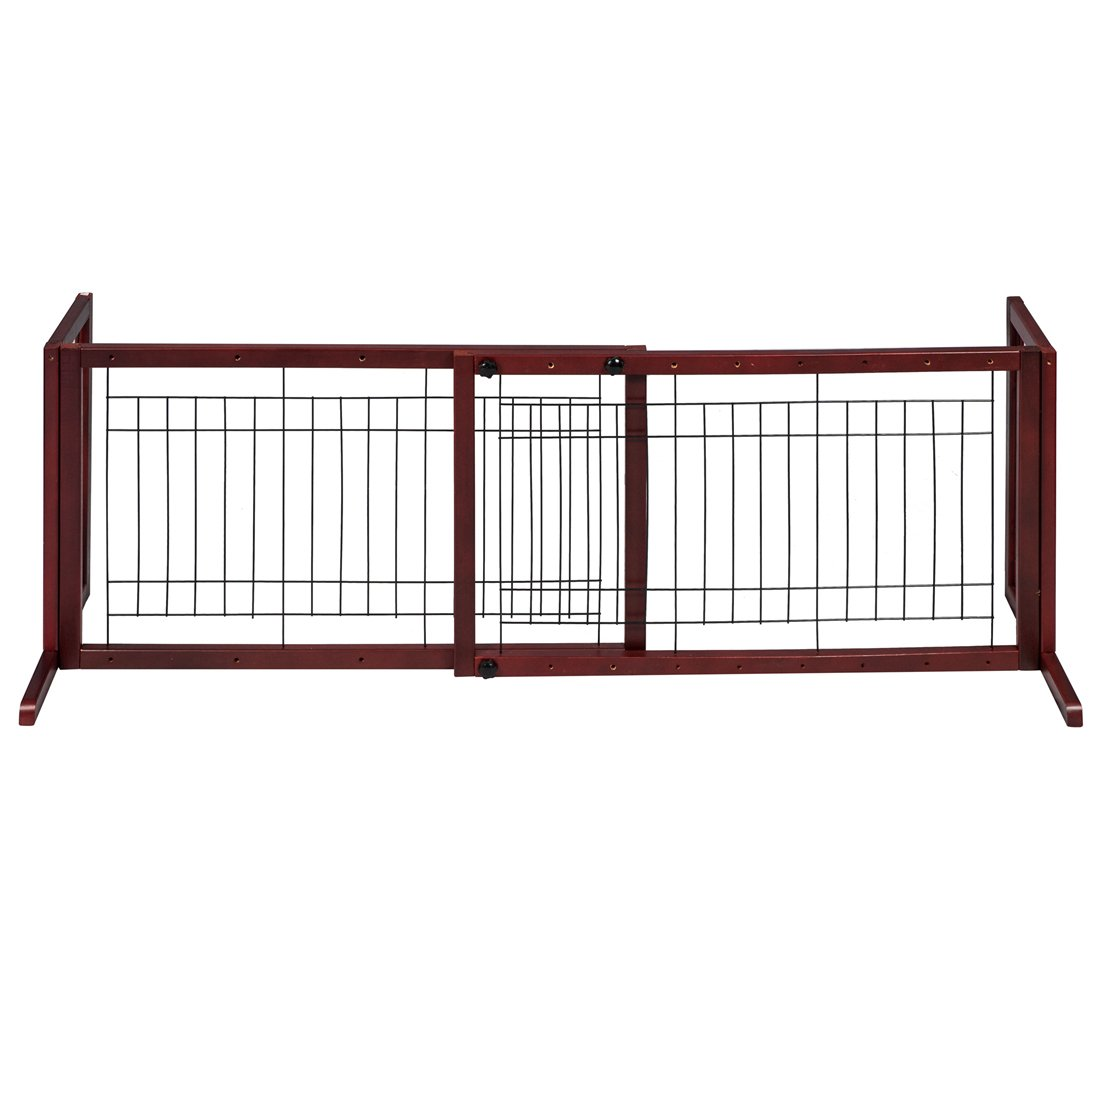 GOOD LIFE Wooden Fence Freestanding Pet Dog Gate Indoor Adjustable Gates for Home Coffee Color 72 Inch PET344 by GOOD LIFE USA (Image #4)